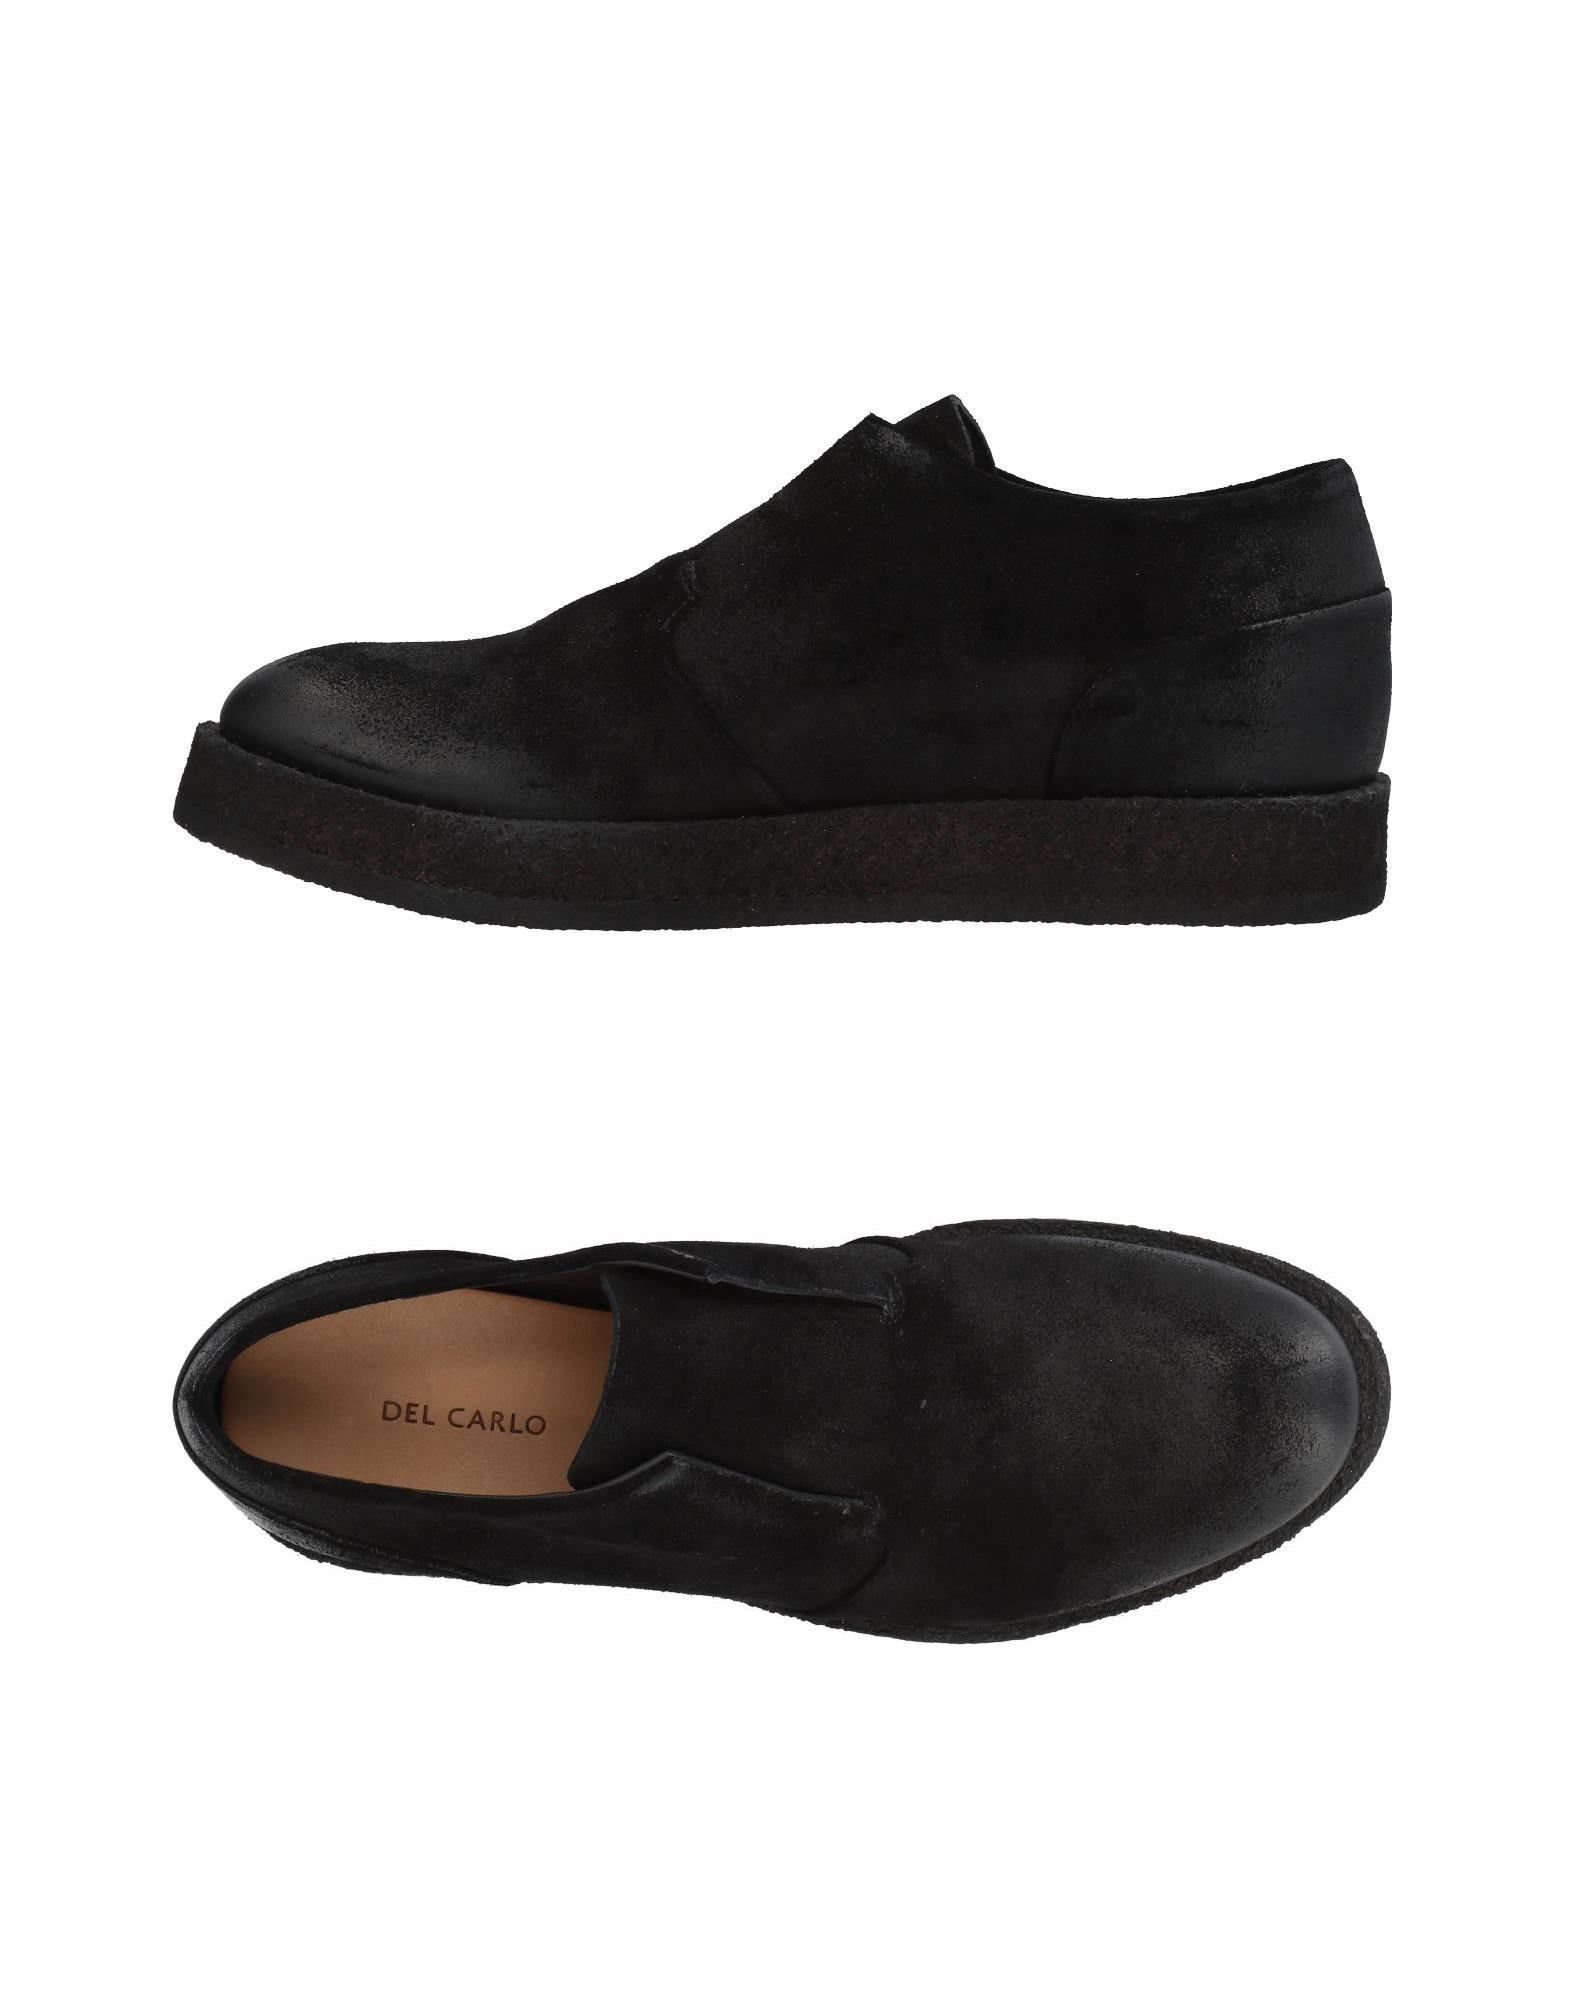 Del Carlo Loafers Loafers - Women Del Carlo Loafers Loafers online on  United Kingdom - 11461663LE 0f1227